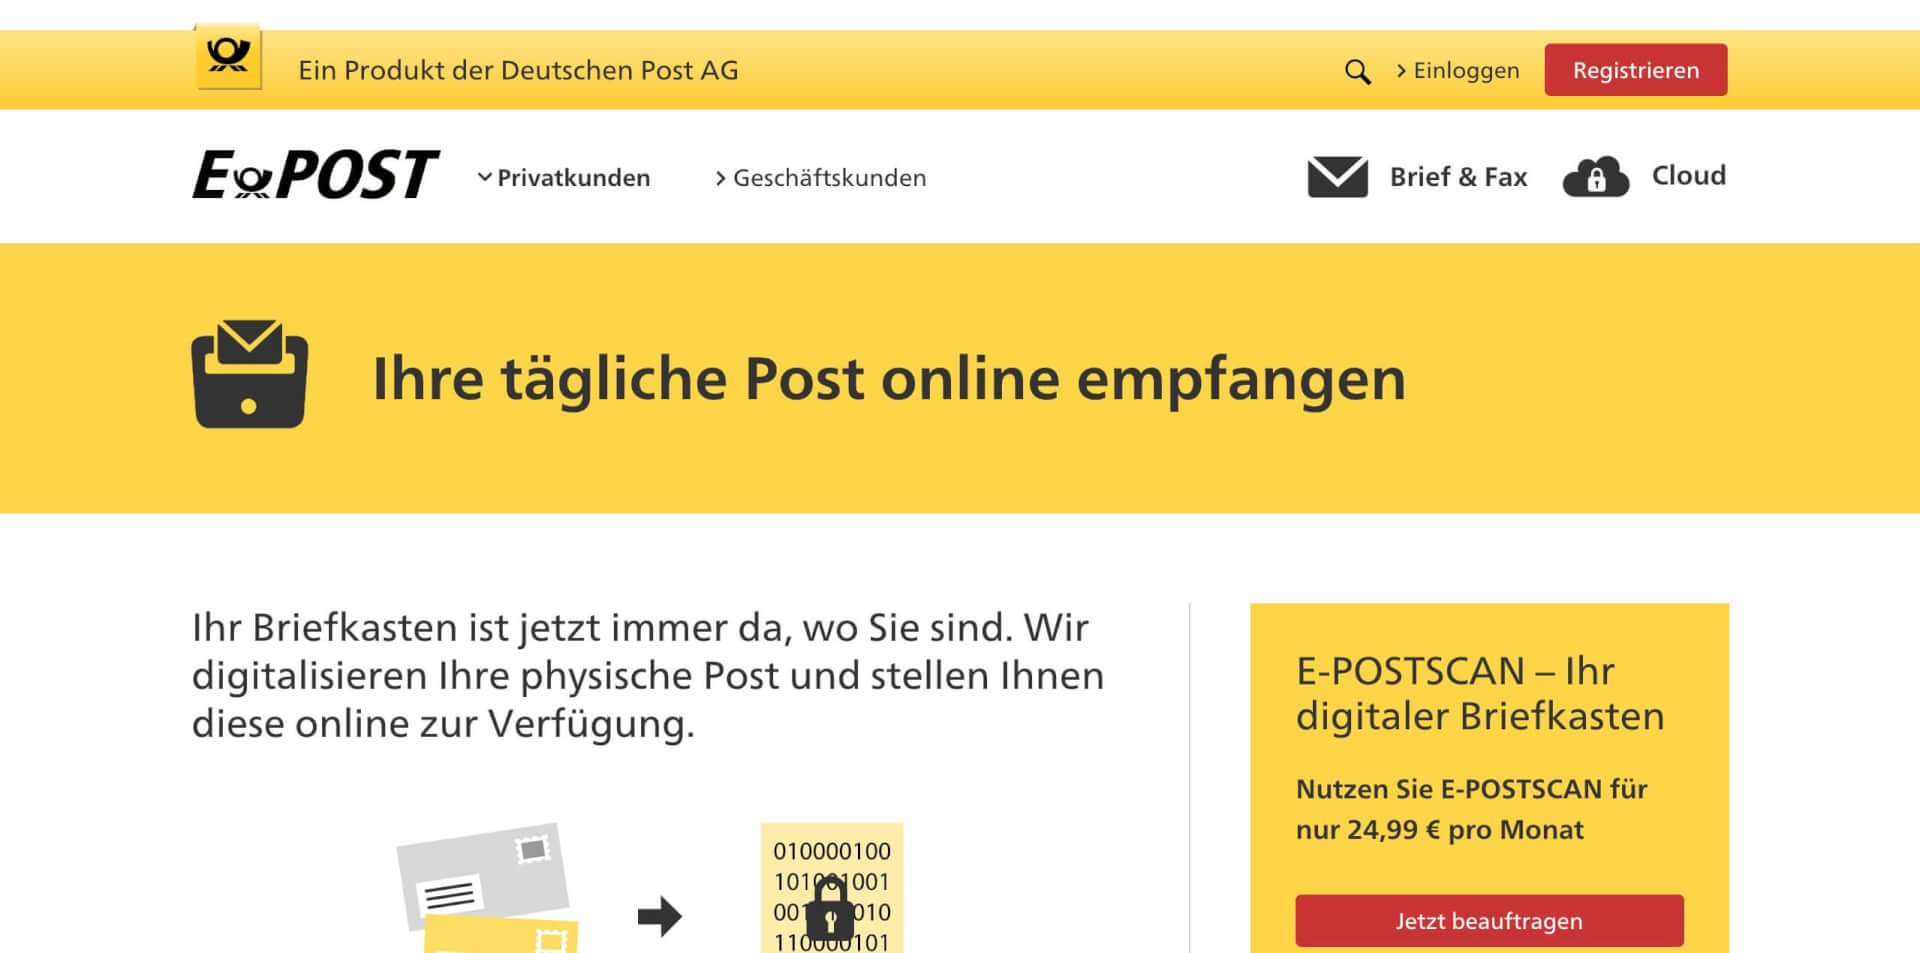 epost scan digitaler briefkasten 1